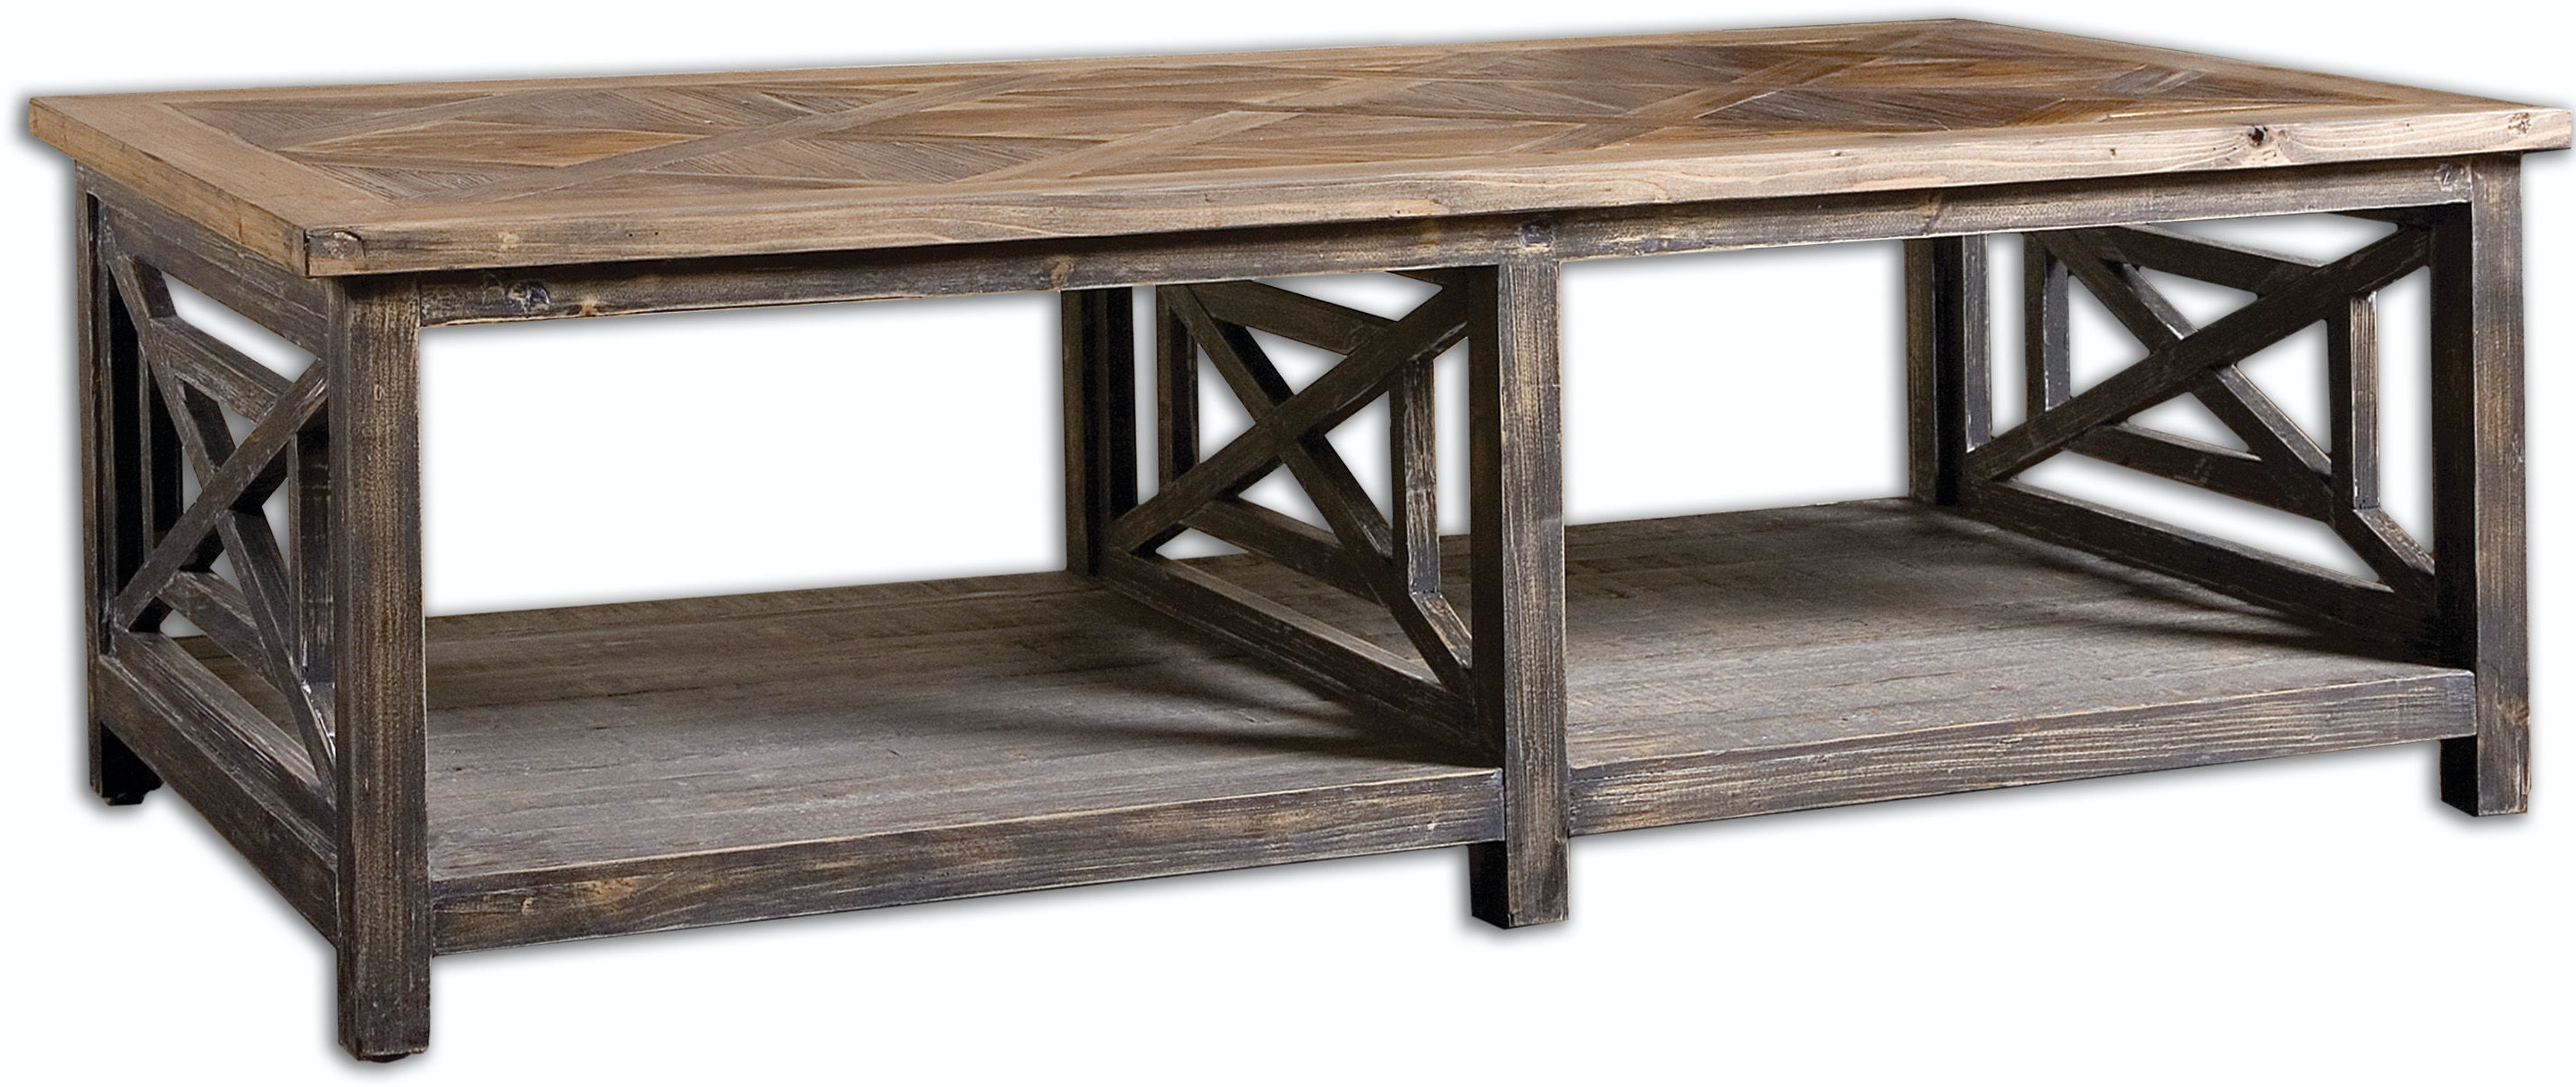 Uttermost Living Room Spiro Reclaimed Wood Cocktail Table : 24264 1 from www.bobmillsfurniture.com size 1024 x 768 jpeg 53kB